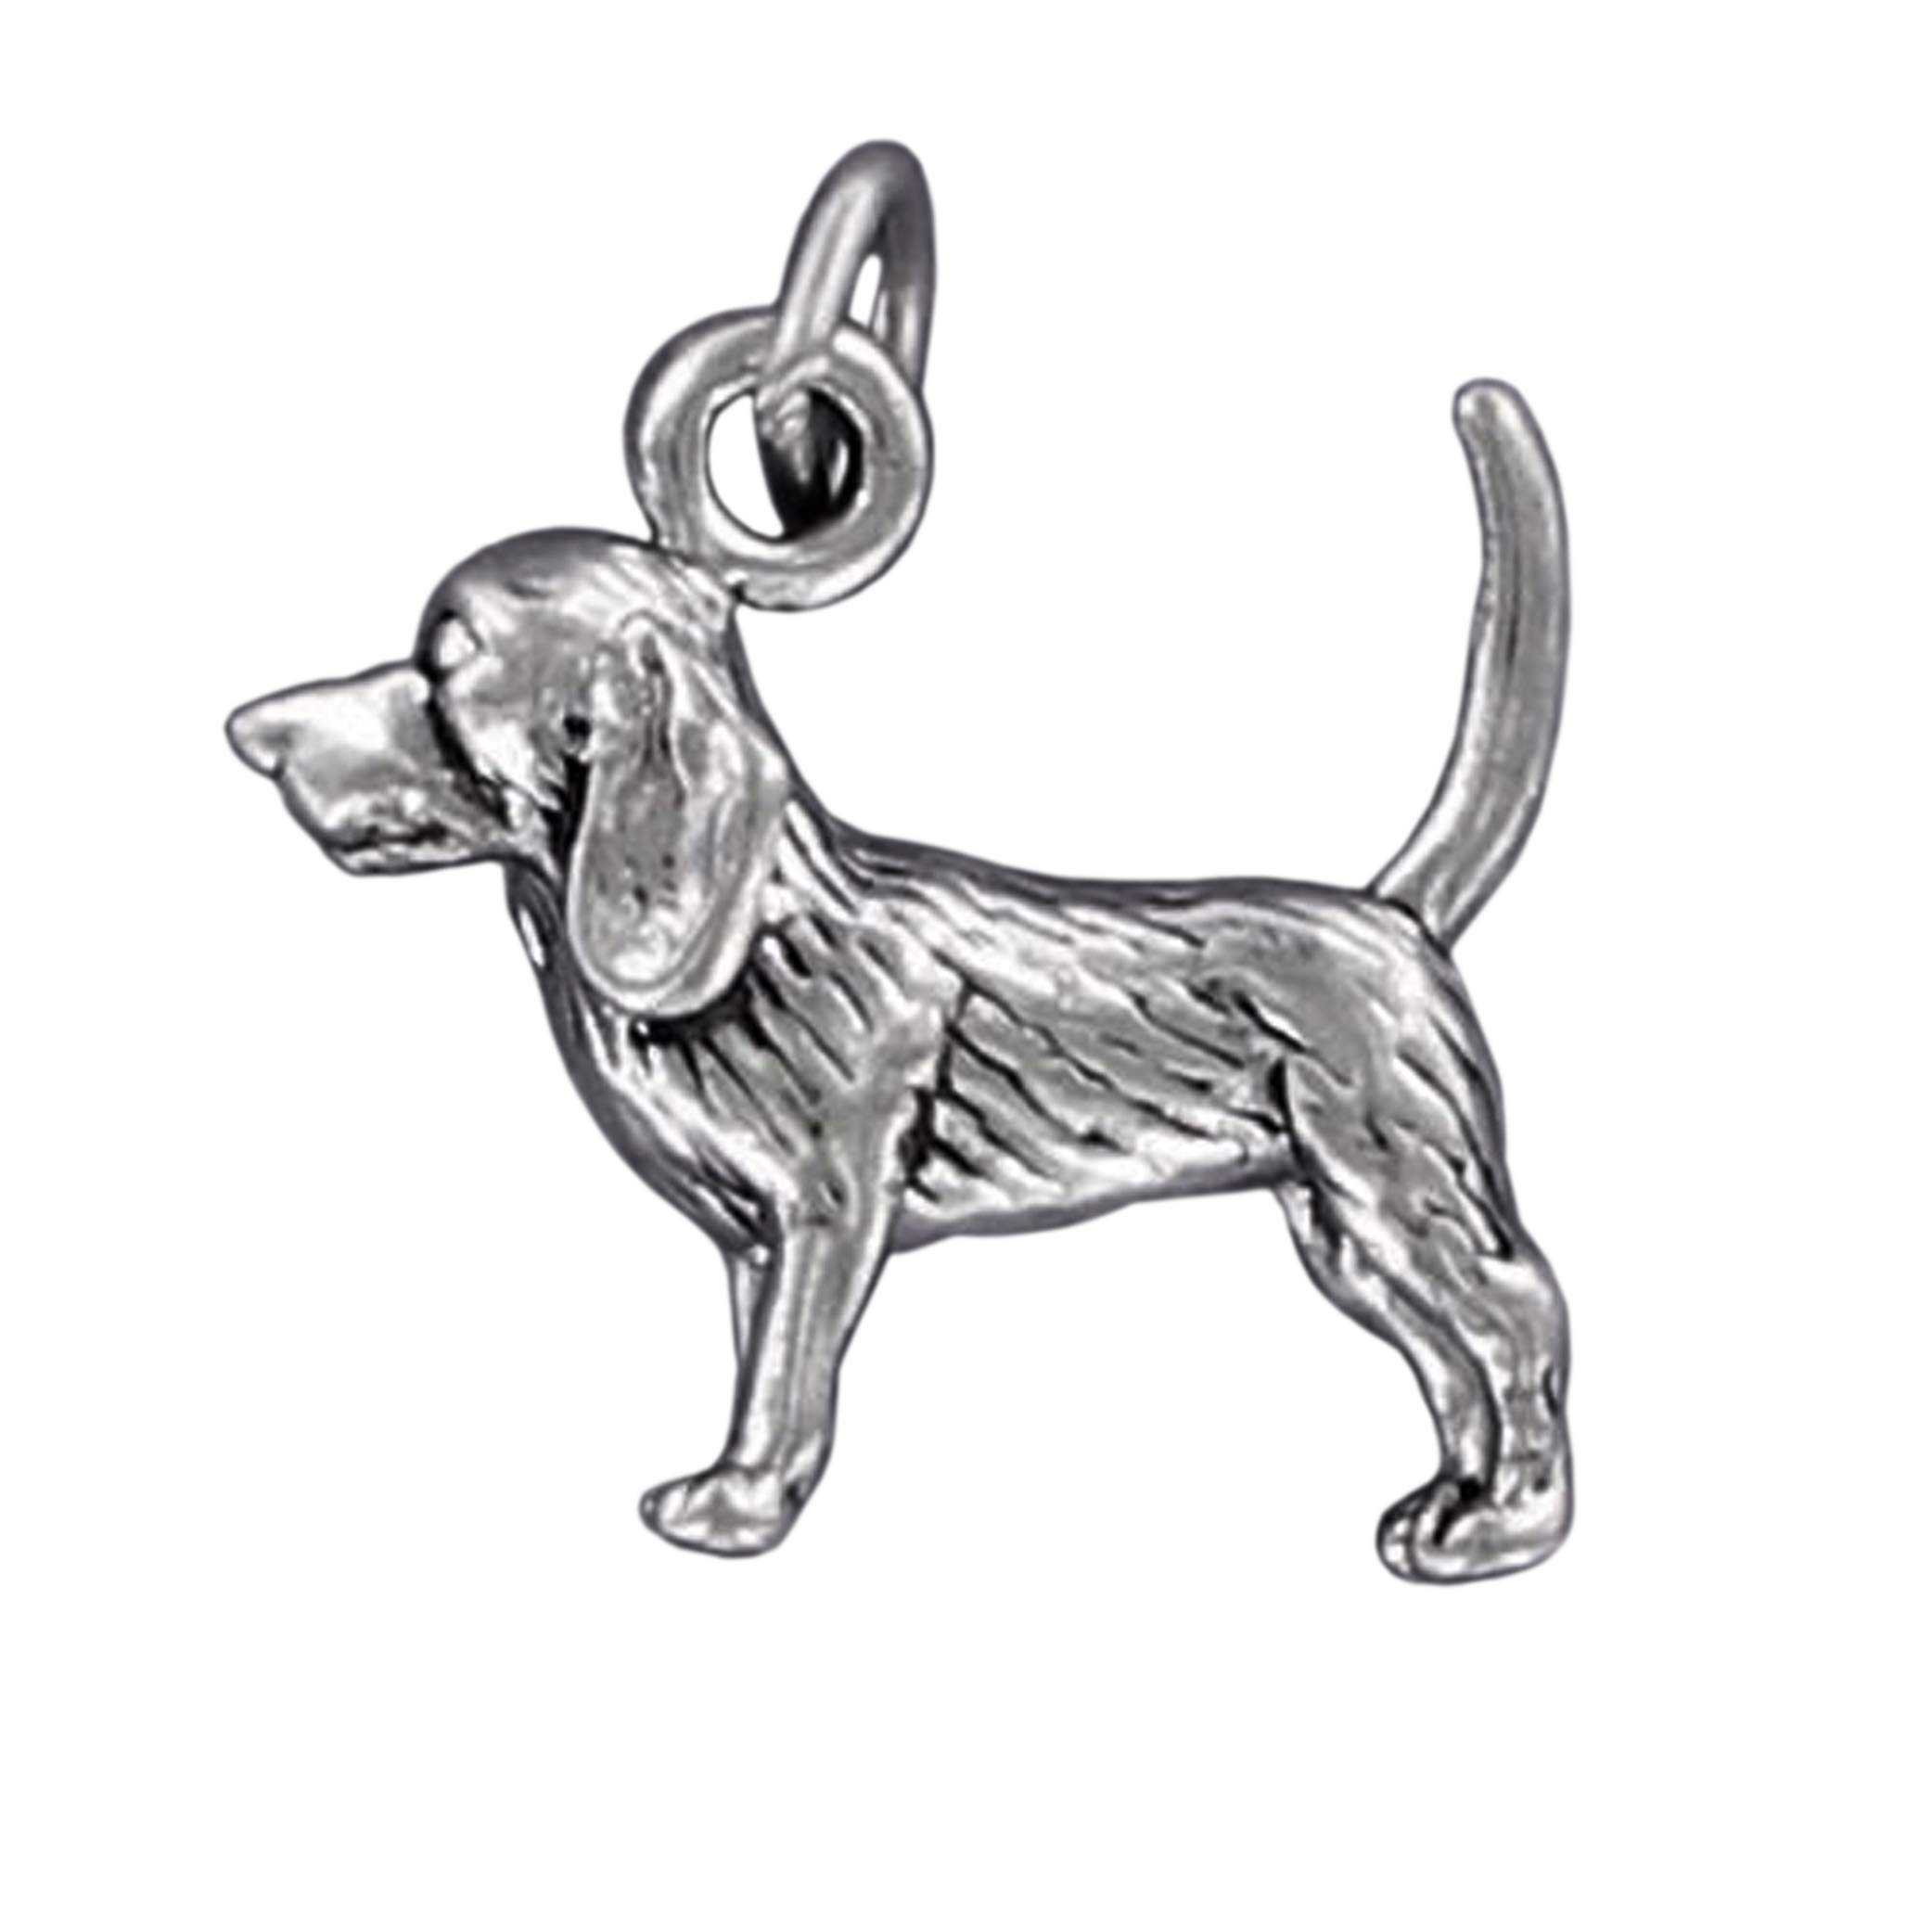 Beagle Dog Charm Sterling Silver for Bracelet Puppy Brown Spots Friendly Pet Jewelry Making Supply, Pendant, Charms, Bracelet, DIY Crafting by Wholesale Charms